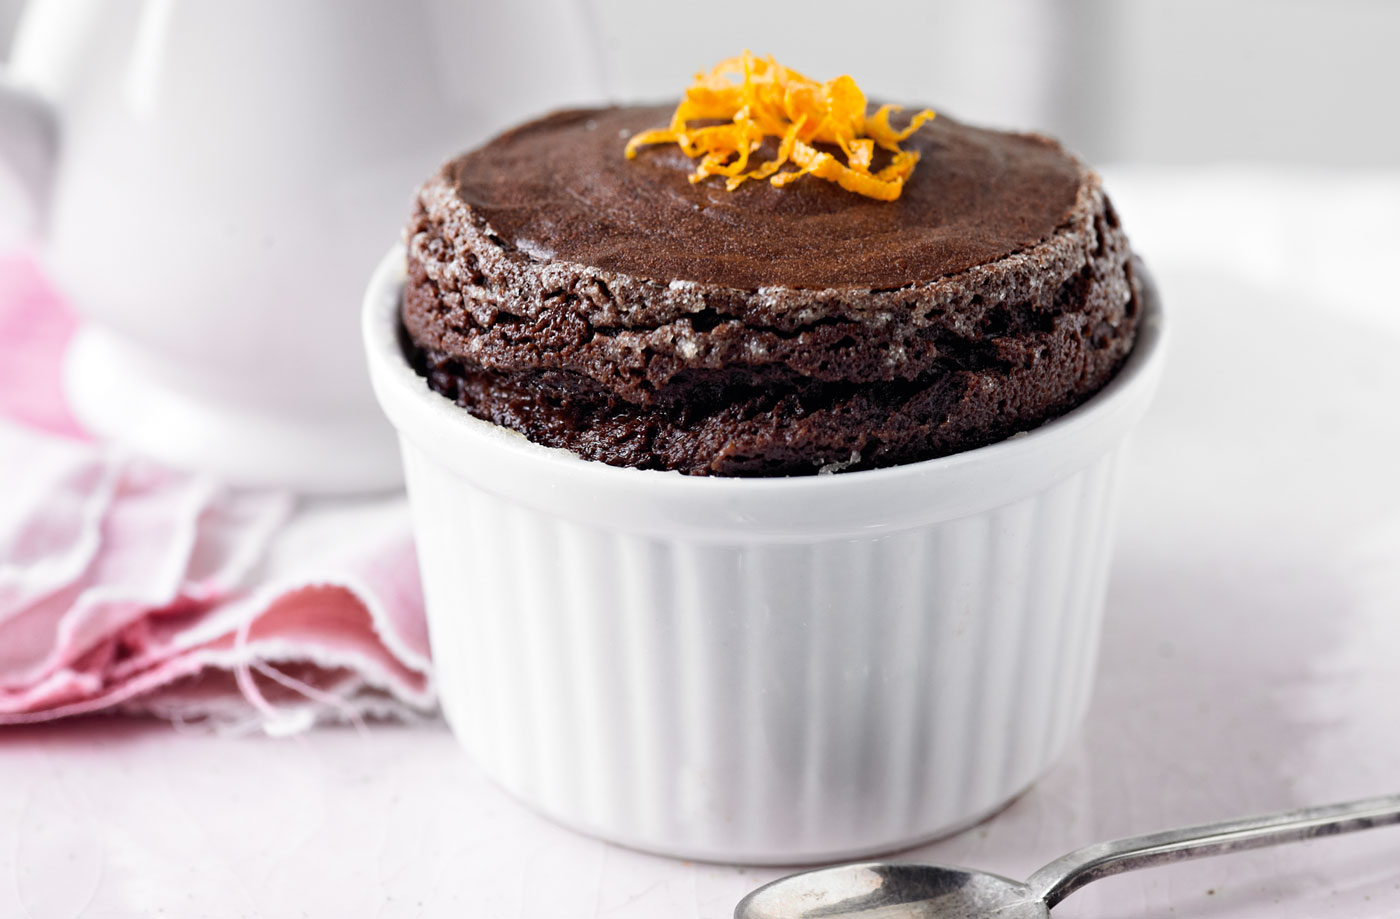 Chocolate orange soufflé recipe (0073)